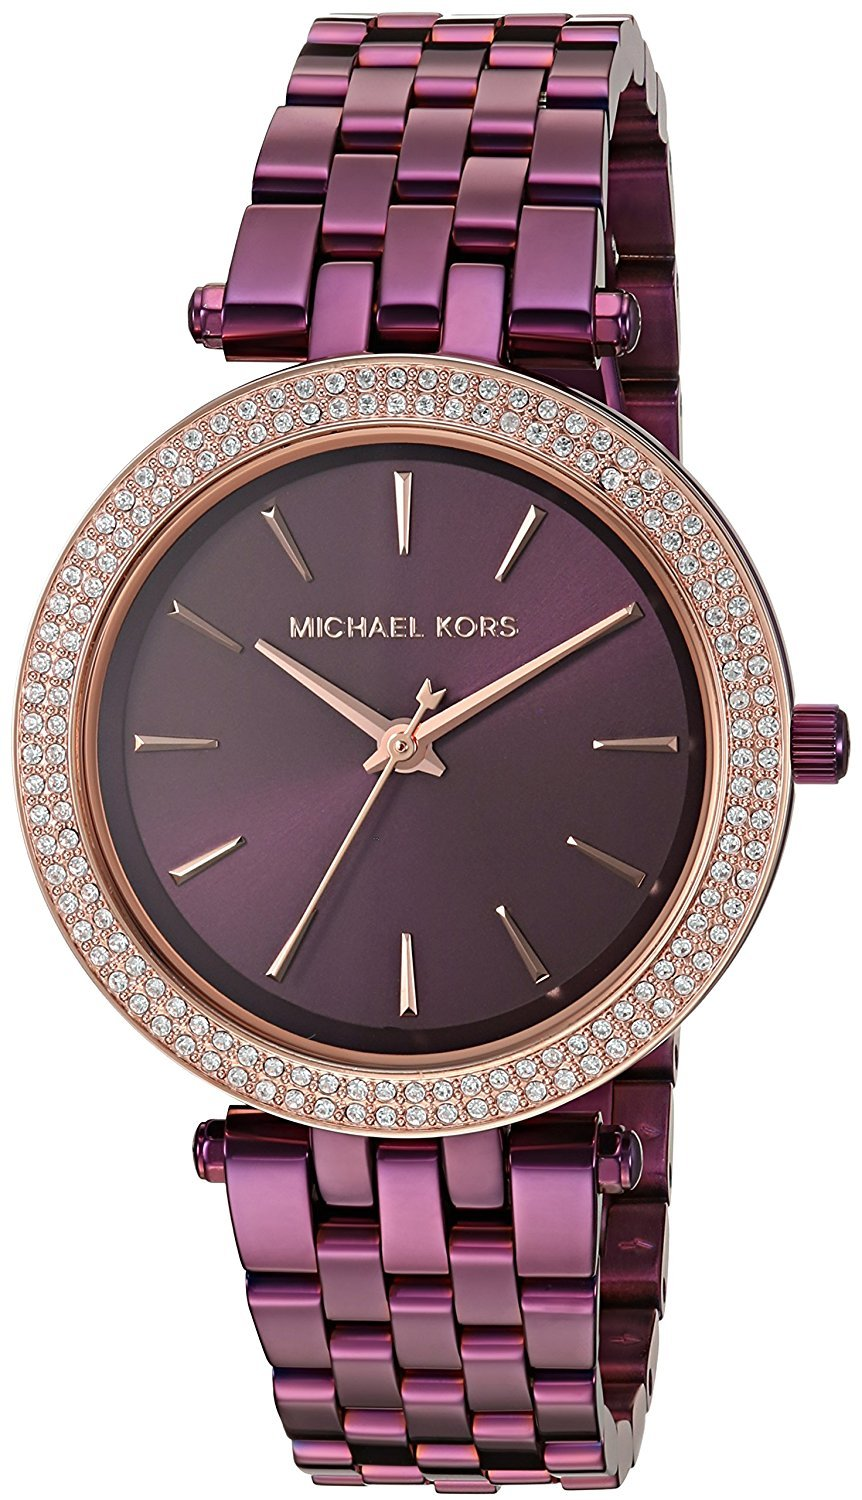 Michael Kors Mini Darci Pave Quartz MK3725 Women's Watch: A Pavé Crystal-Accented, Glamorous, Petite Plum!